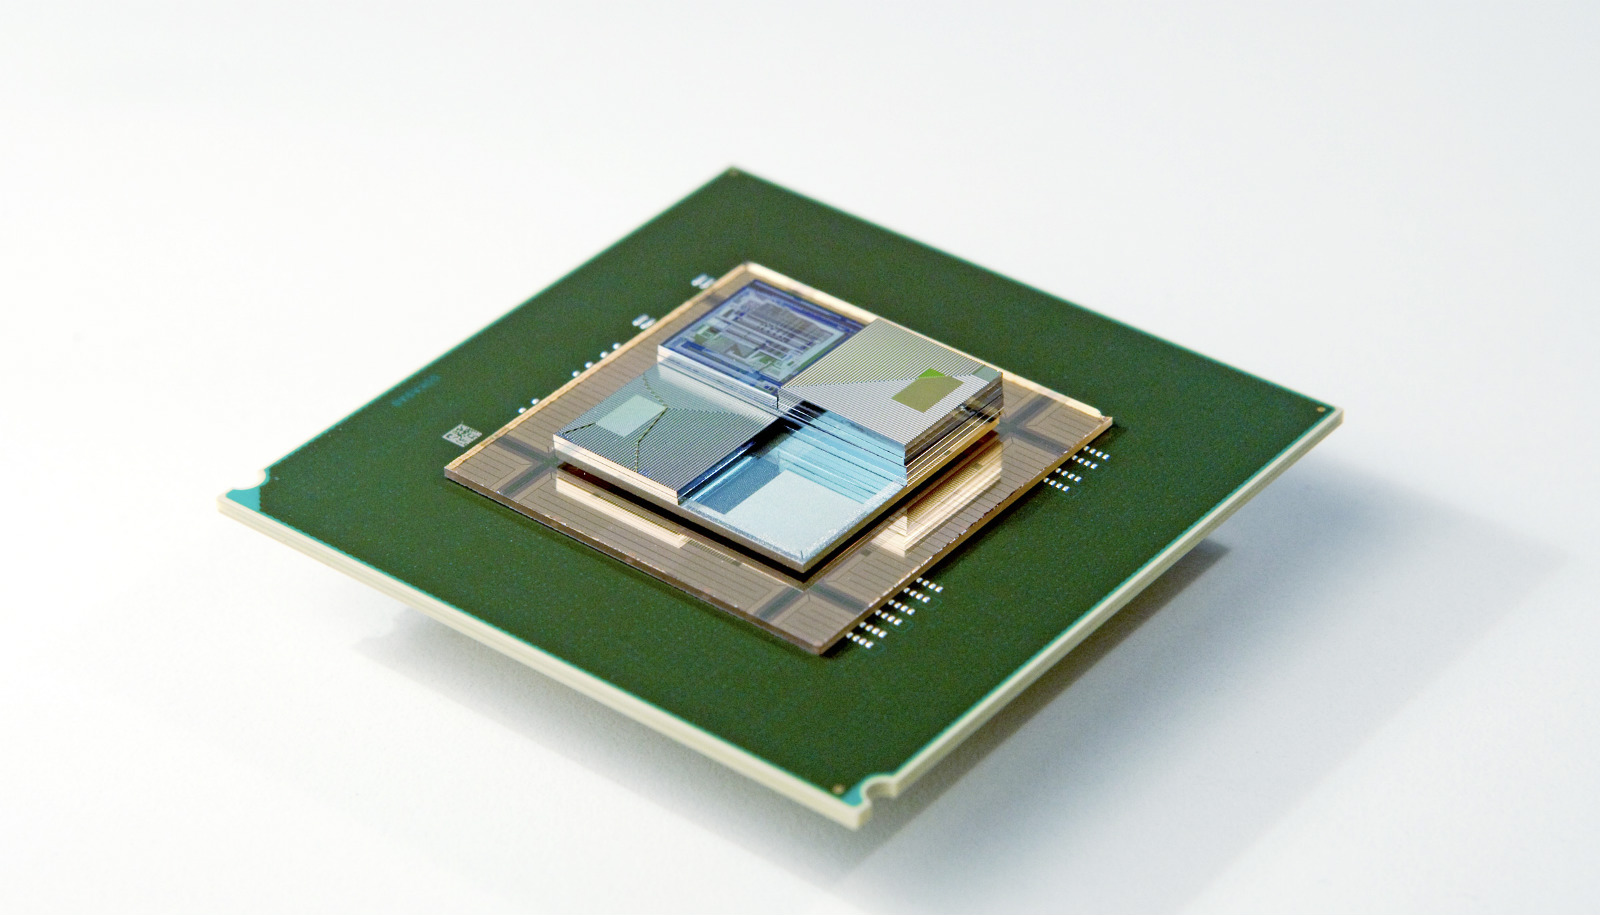 Liquids in thin battery could cool stacks of computer chips